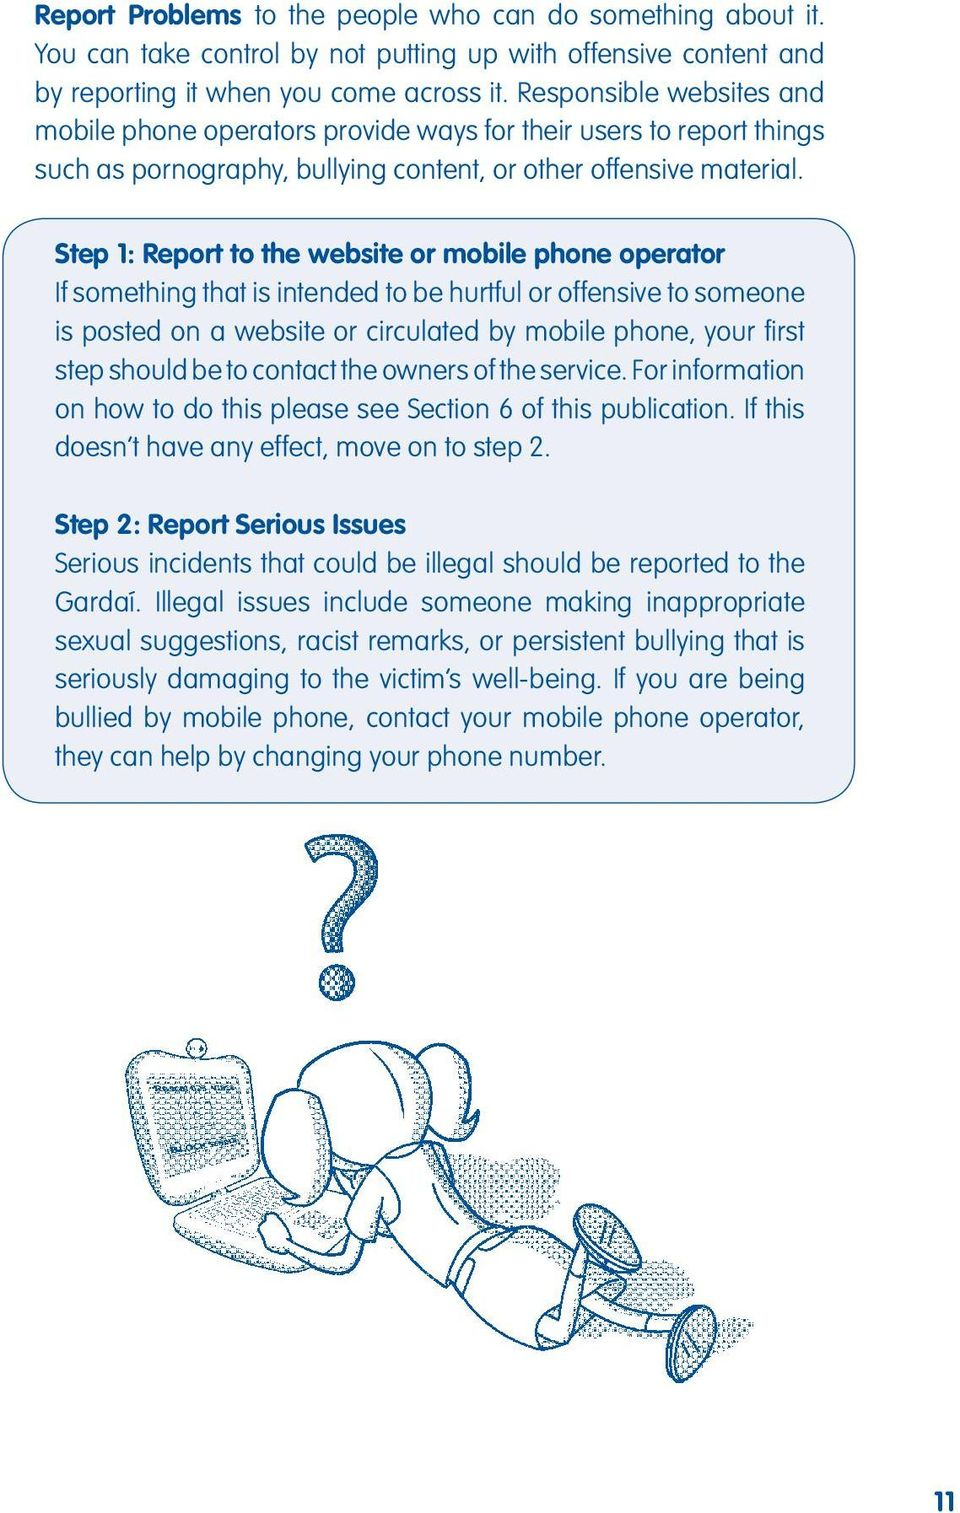 Step 1: Report to the website or mobile phone operator If something that is intended to be hurtful or offensive to someone is posted on a website or circulated by mobile phone, your first step should